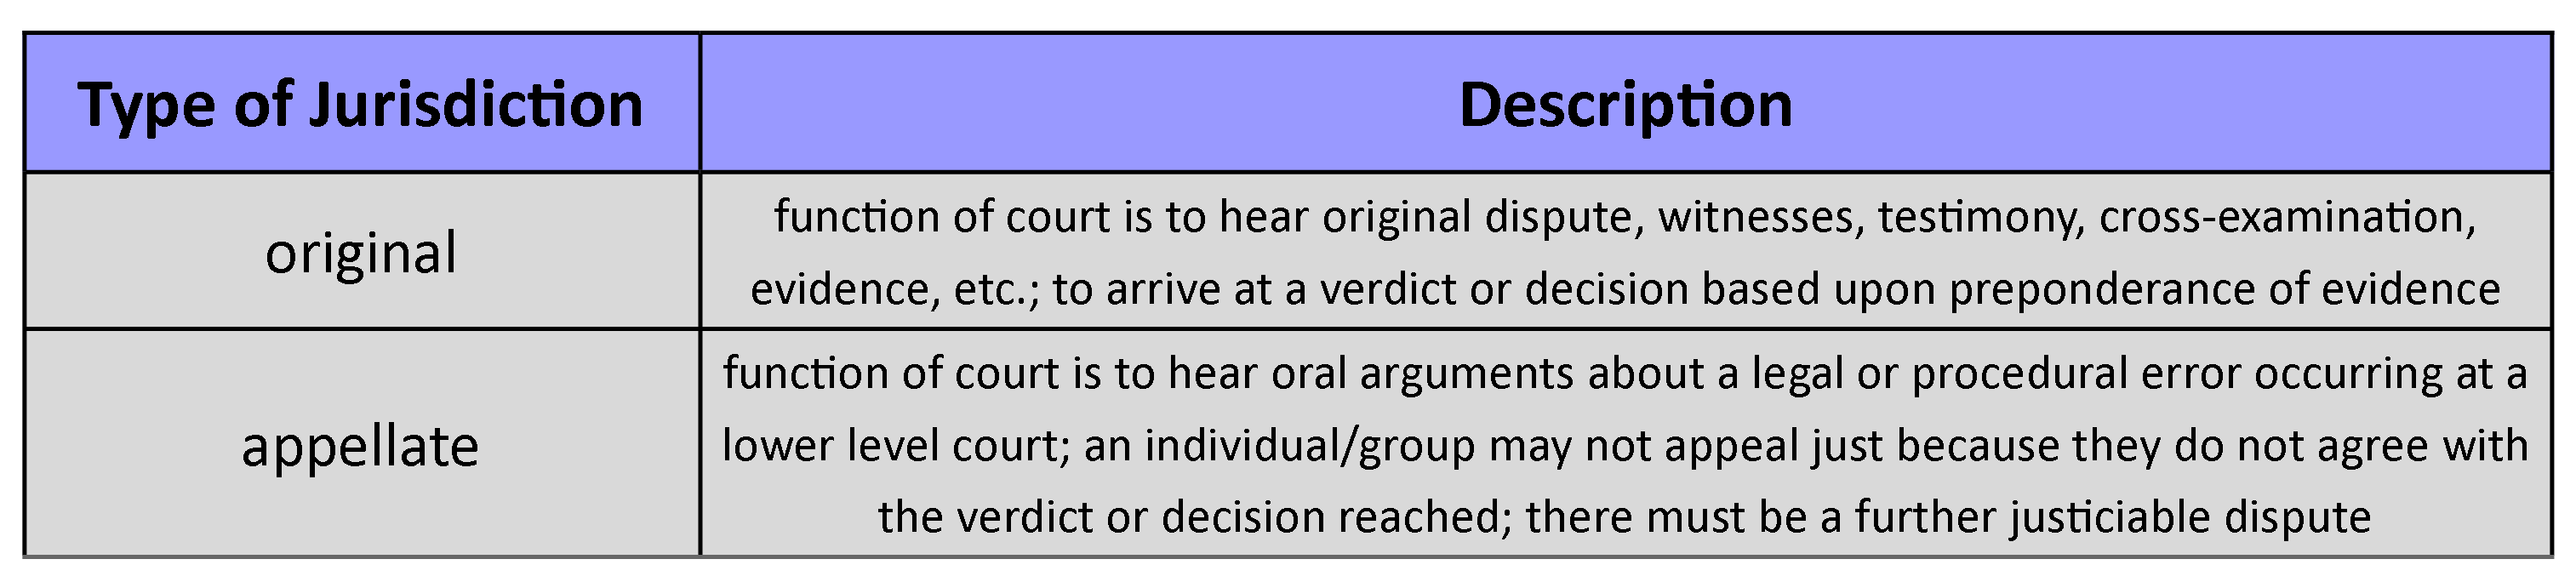 Chart shows types of jurisdiction, original and appellate with a basic description.